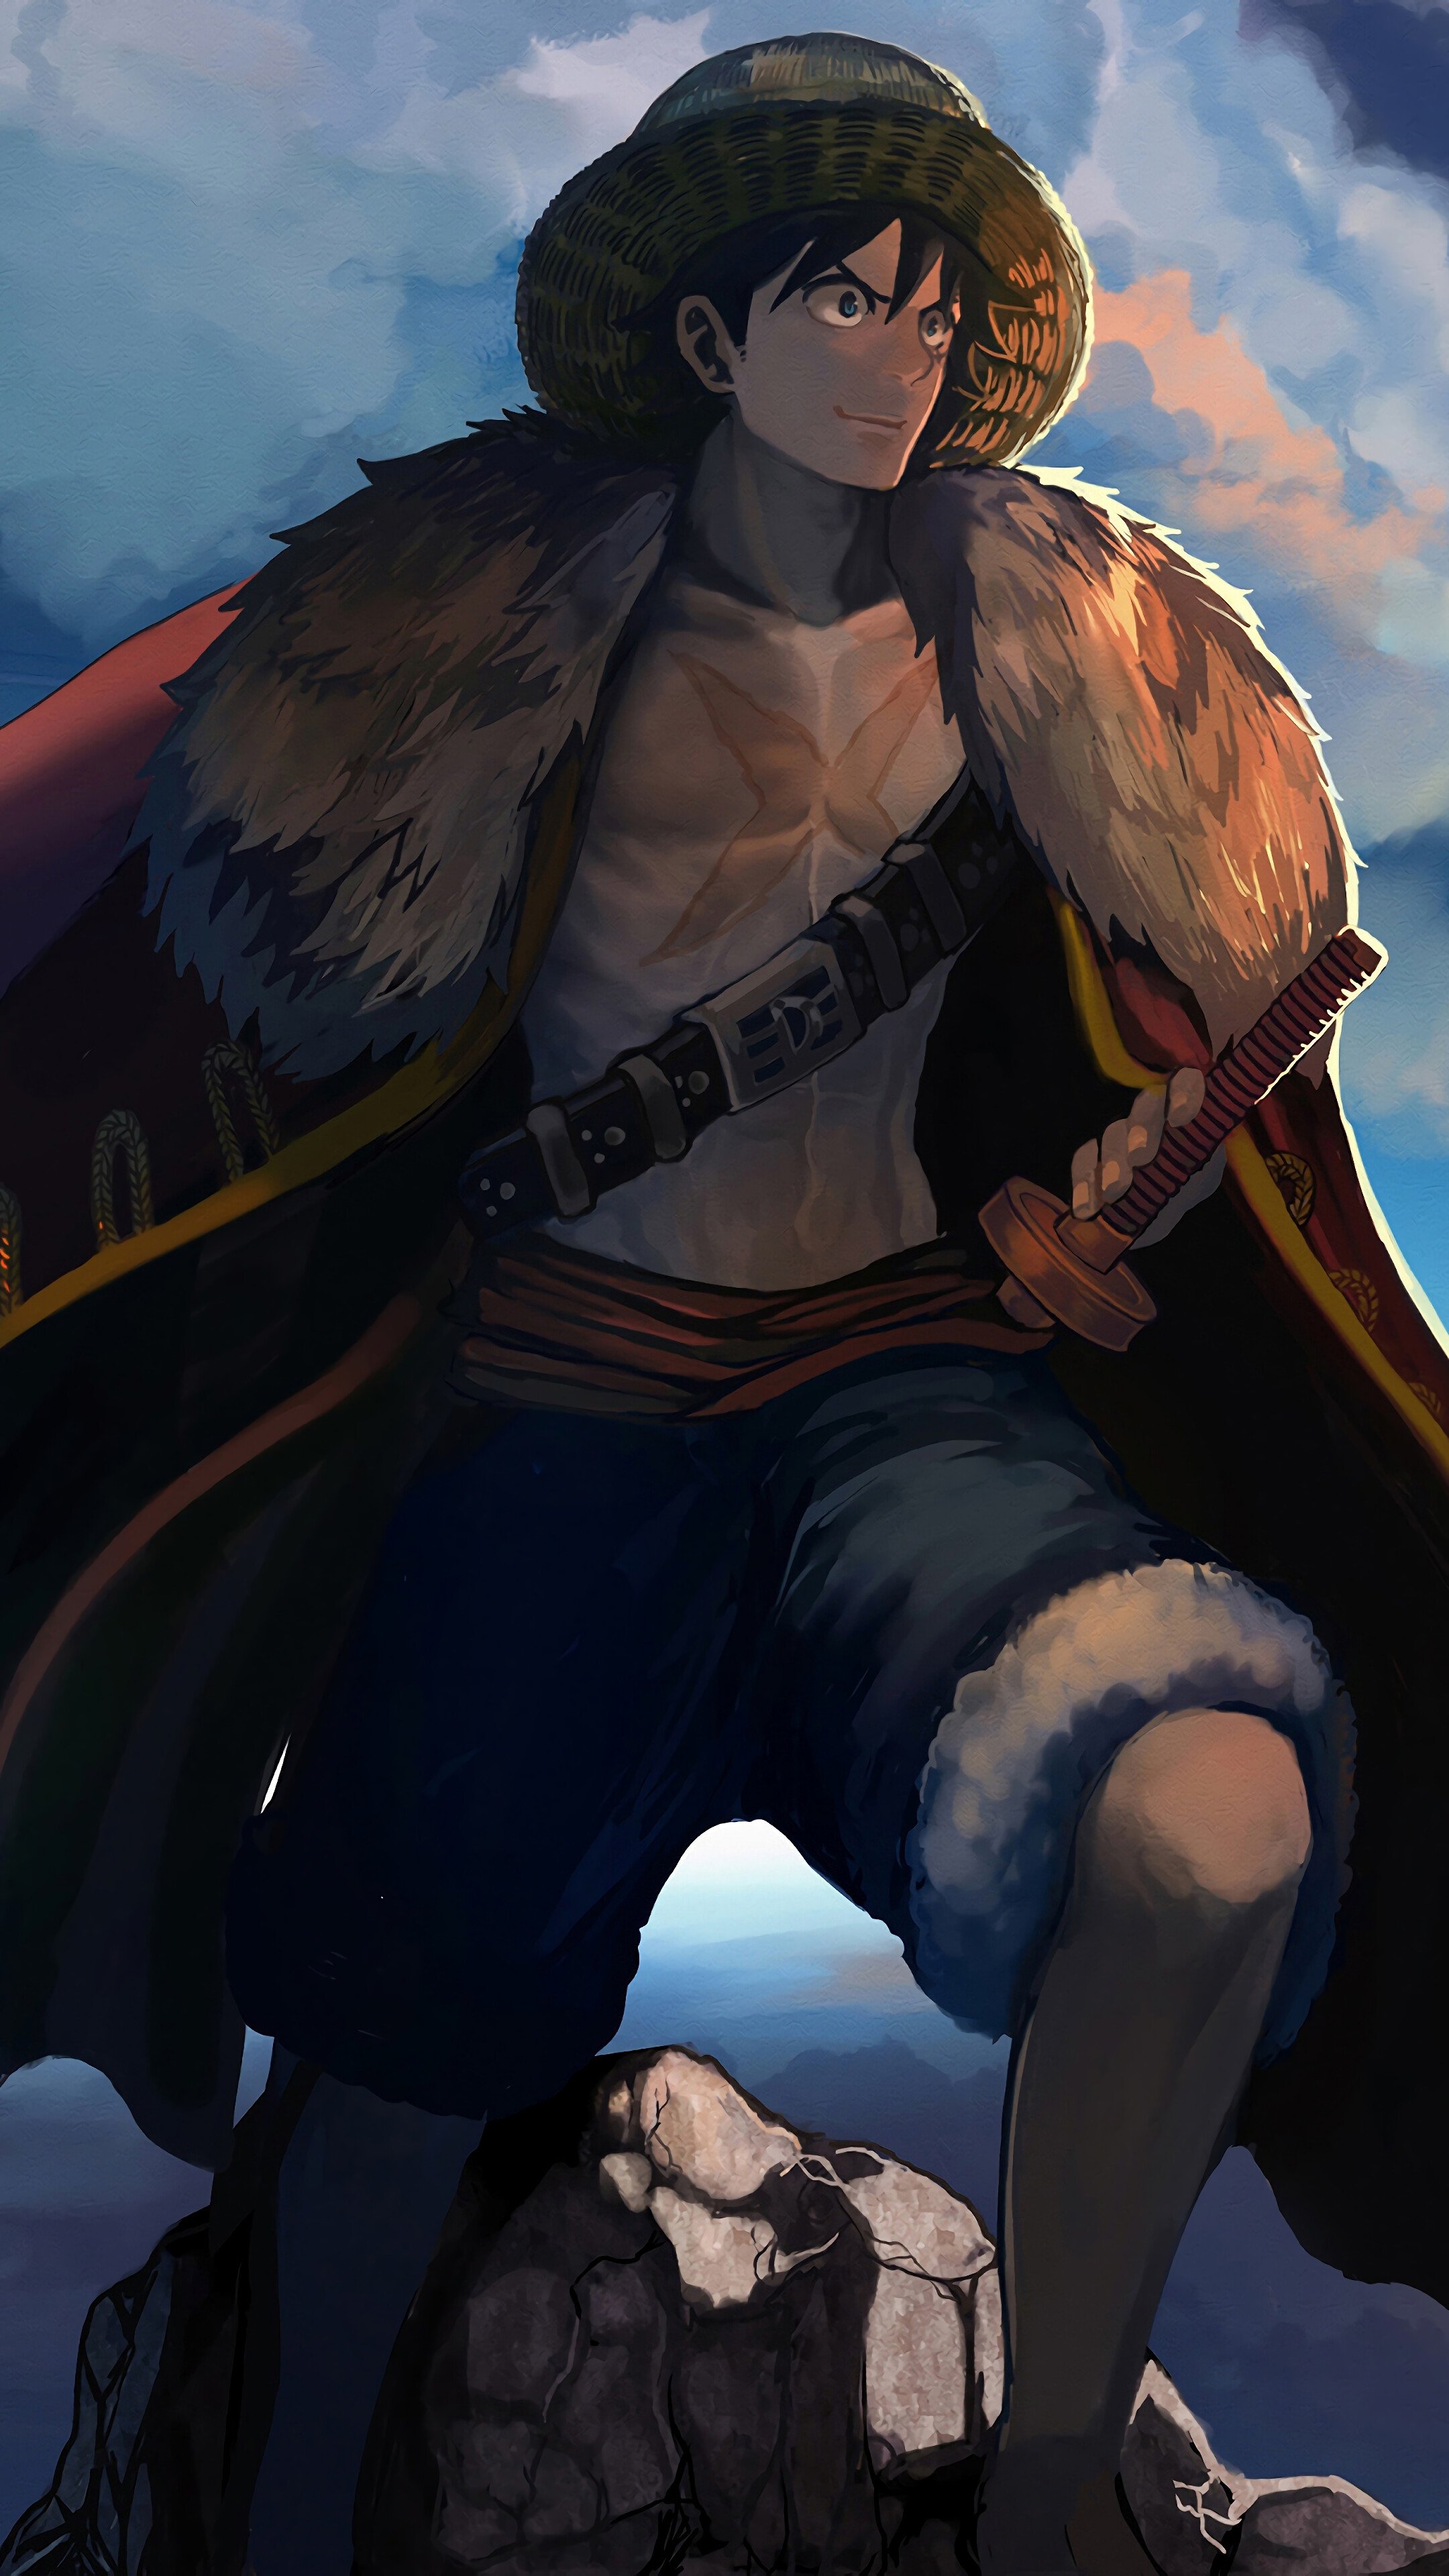 Luffy One Piece 4k Iphone 10 7 6s 6 Hd Wallpapers 3051673 Hd Wallpaper Backgrounds Download